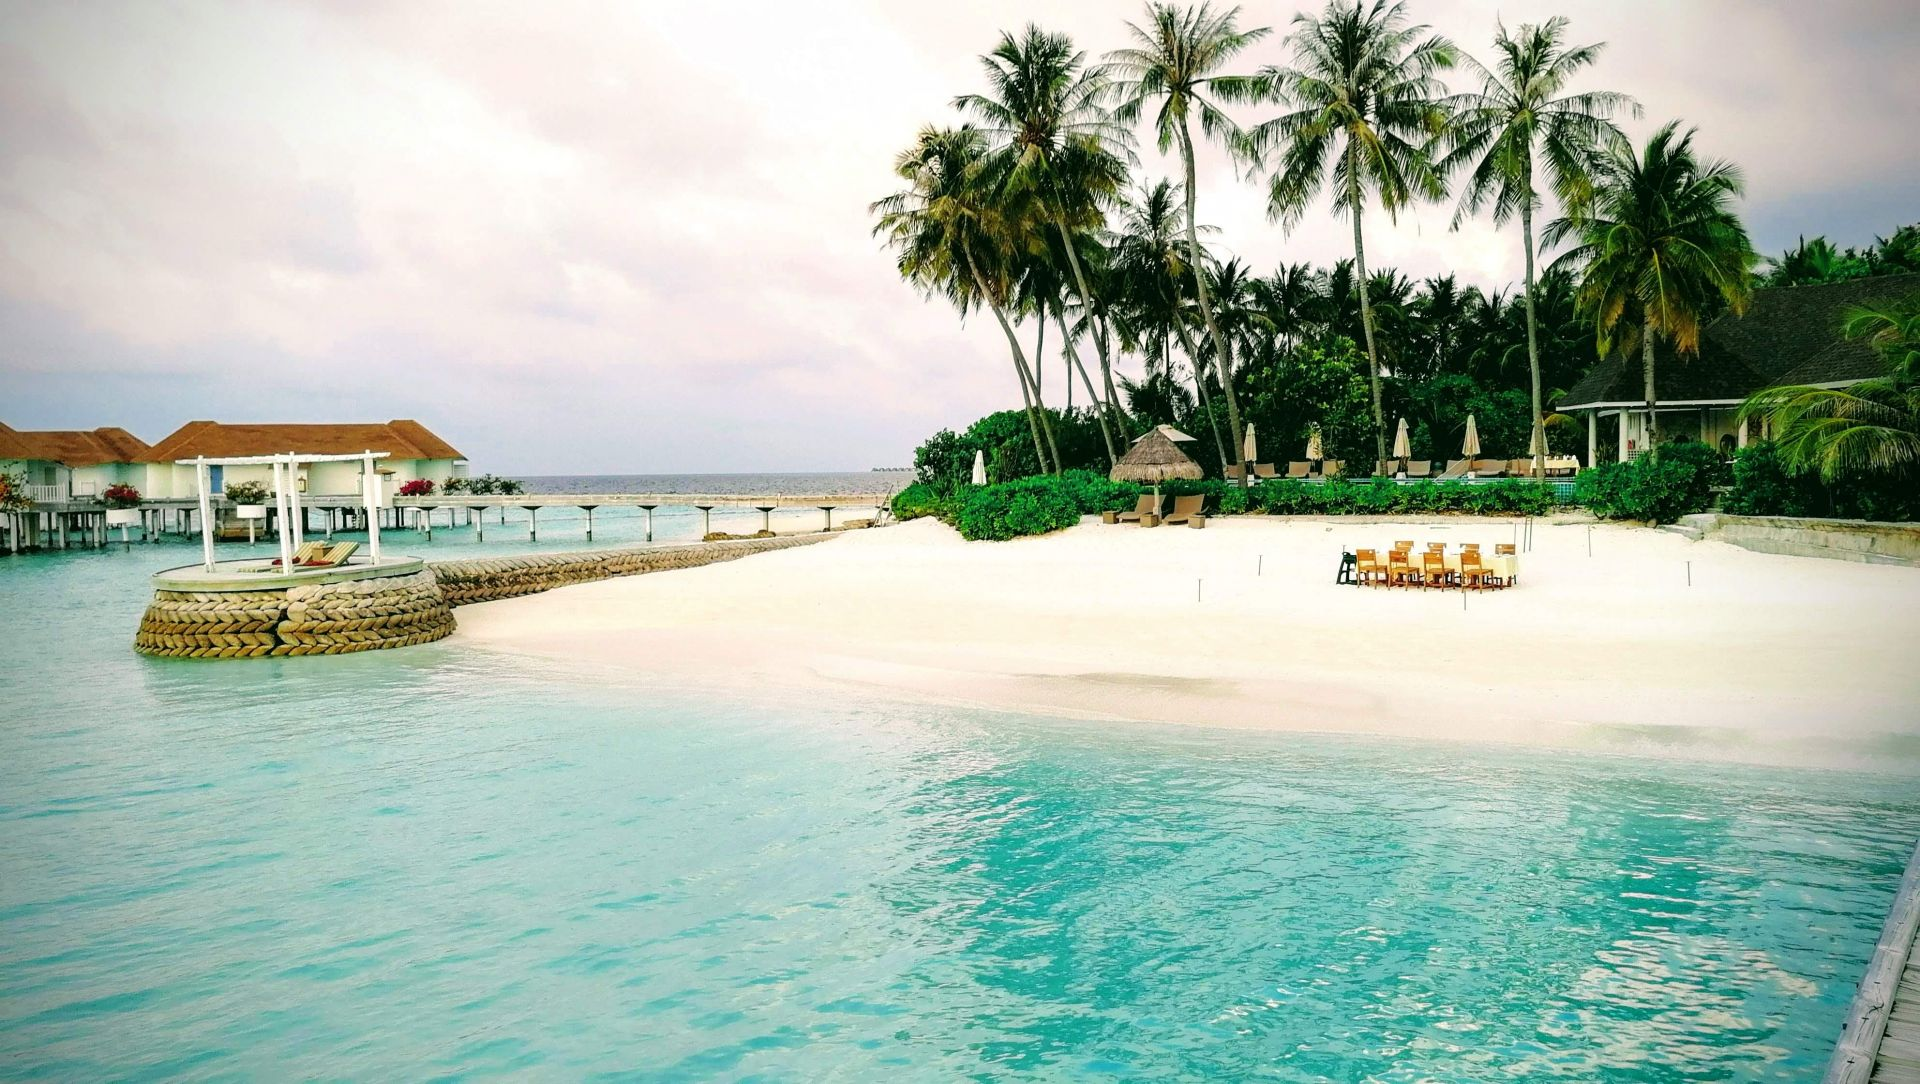 Centara Grand Resort, Maldives